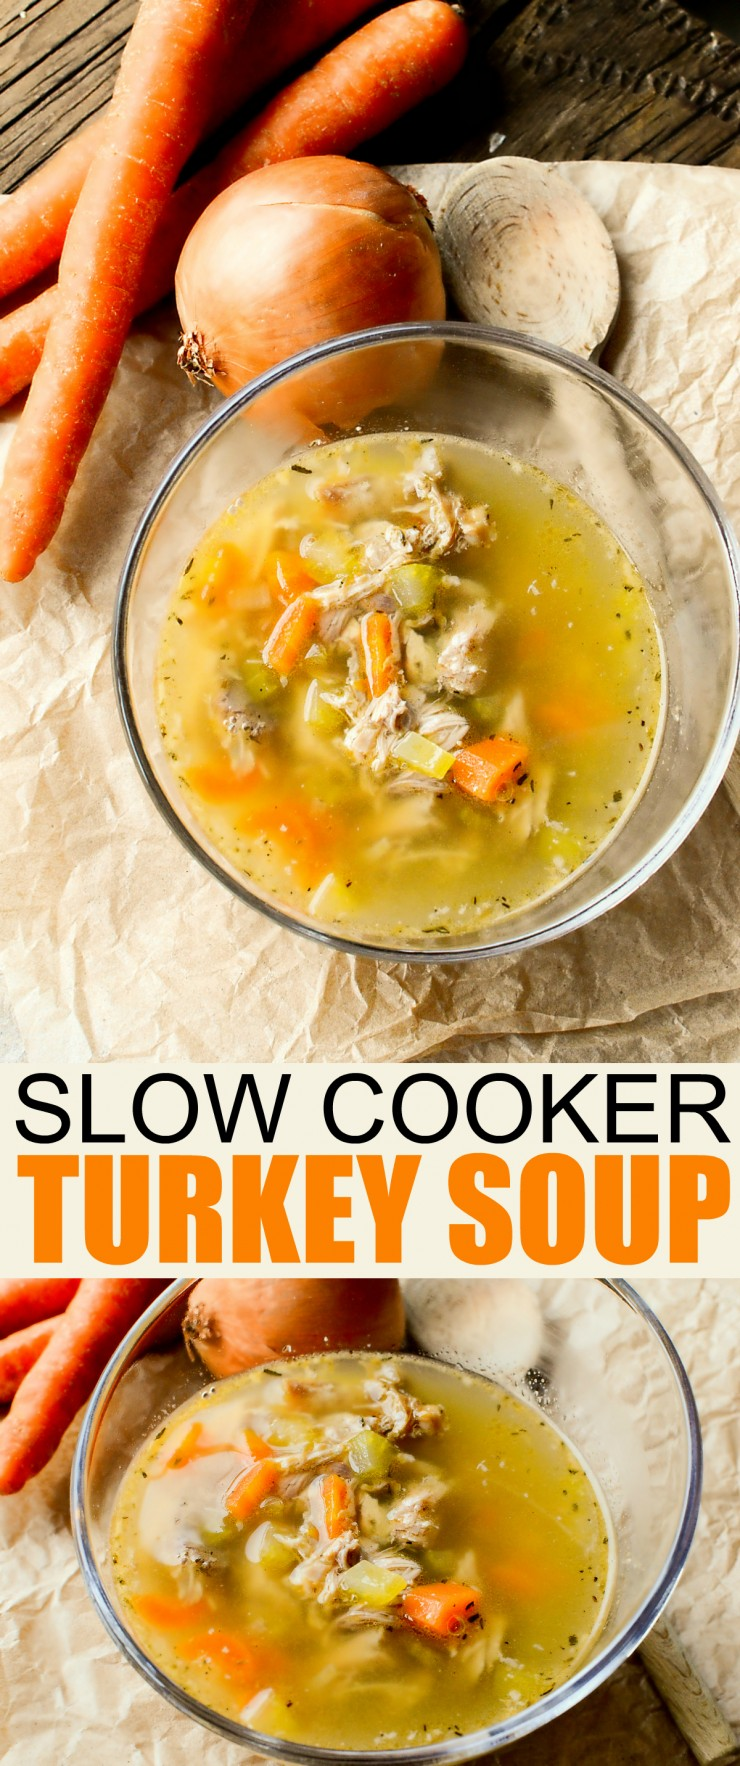 Stretch your food dollar with this Slow Cooker Turkey Soup recipe - a delicious and nourishing easy to make slow cooked soup.